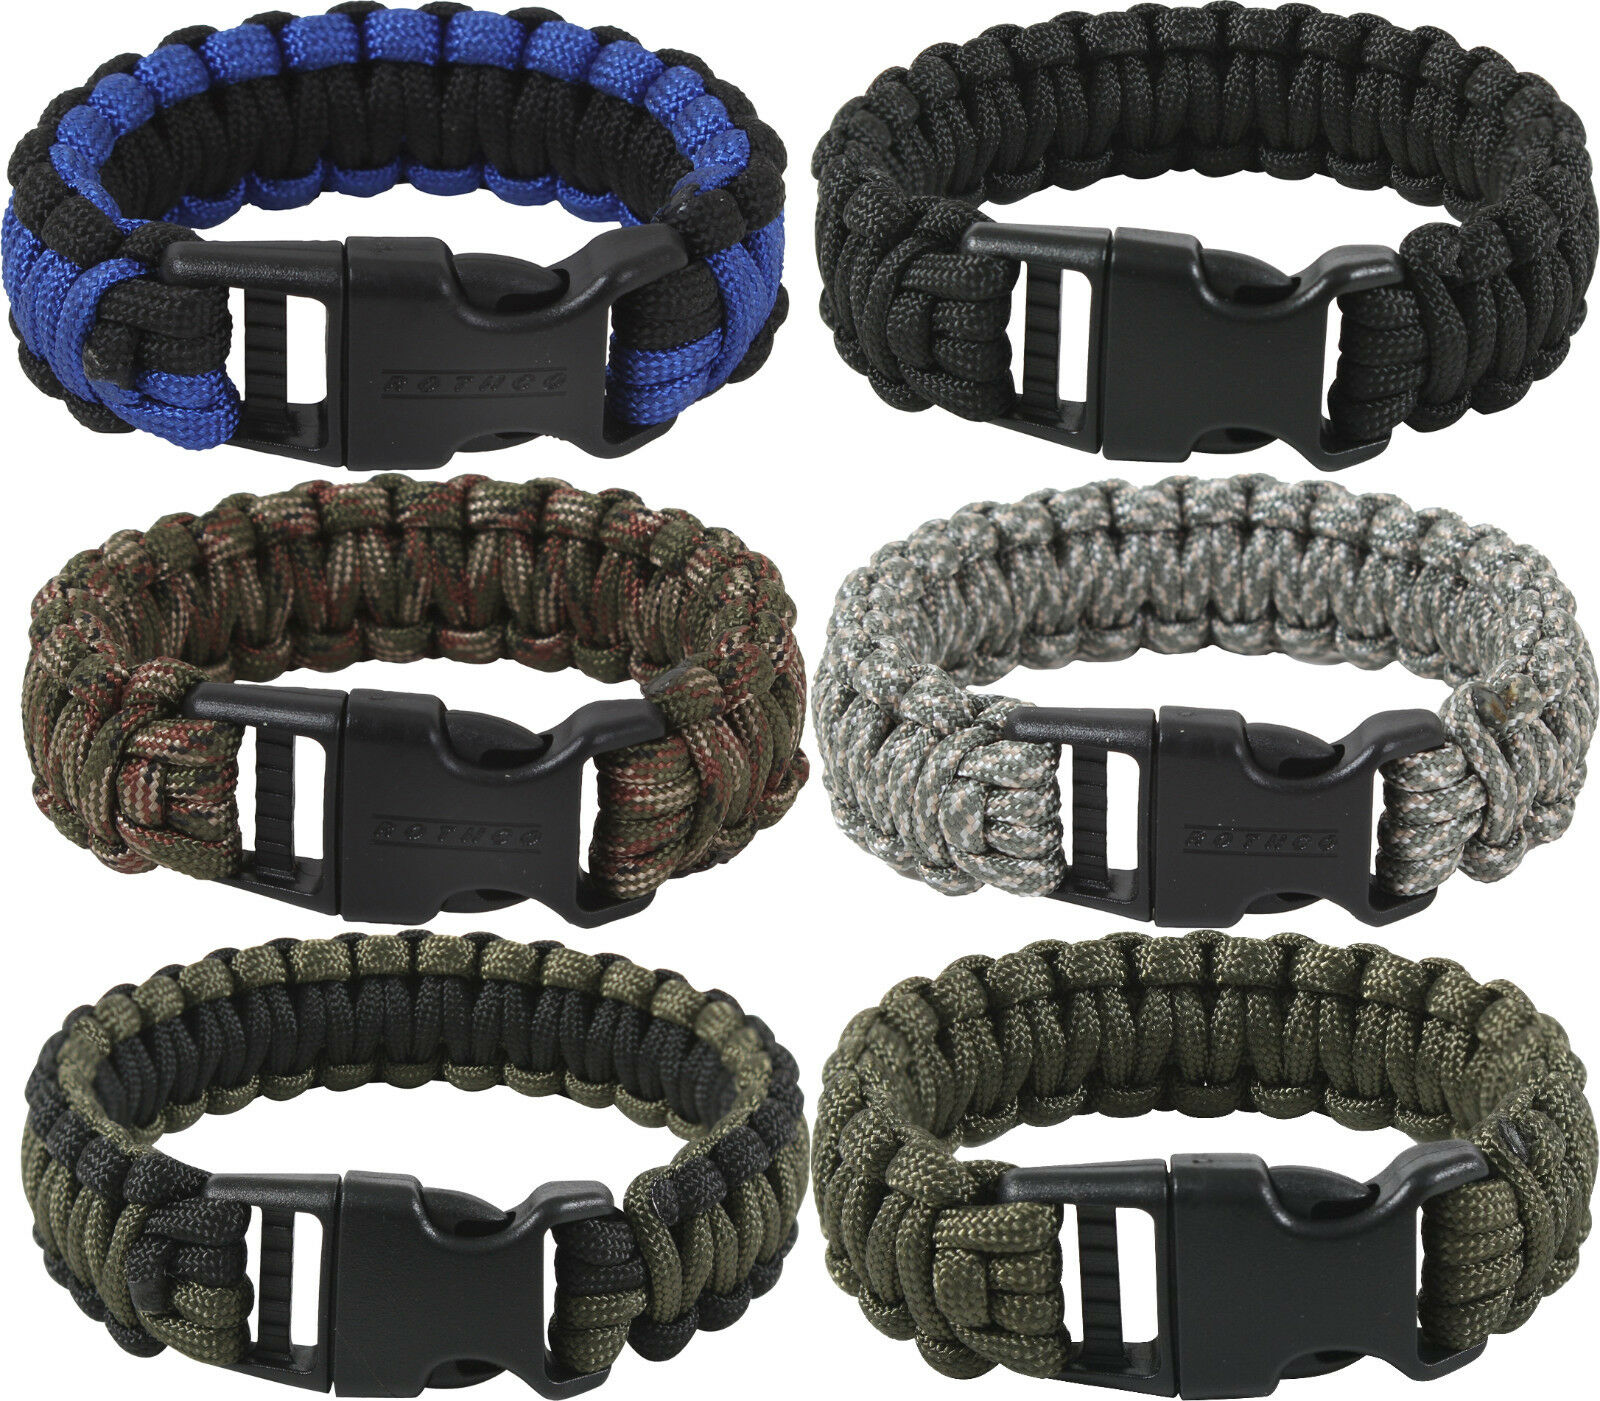 Deluxe Survival Paracord Bracelet w/ Buckle Camping & Hiking